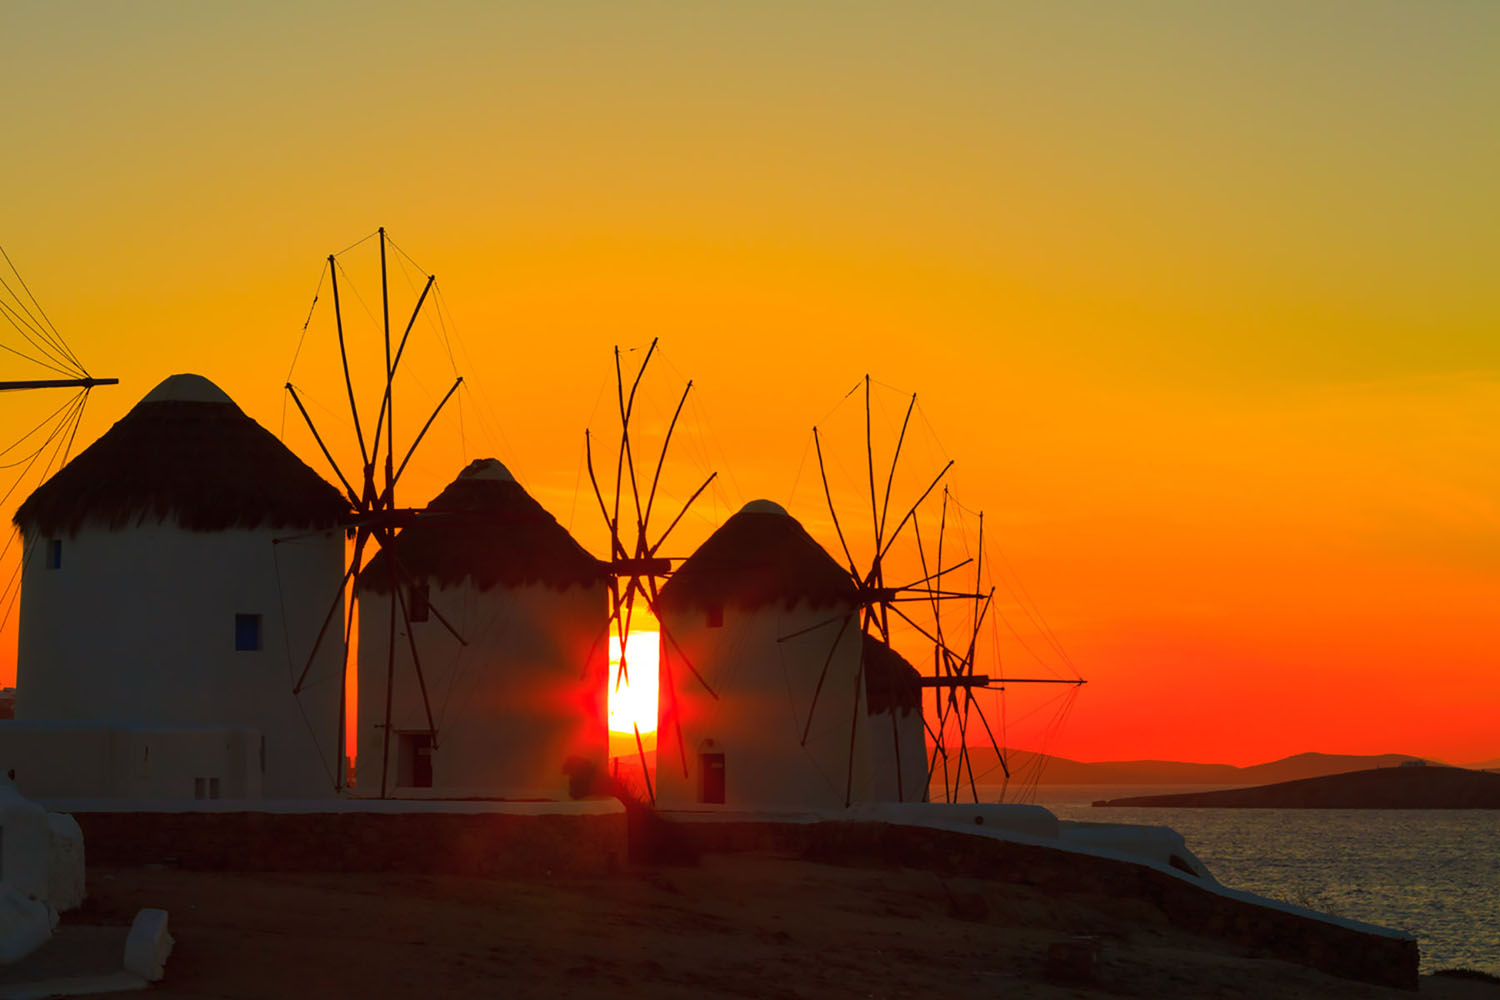 The windmills in Mykonos, Greece at sunset.